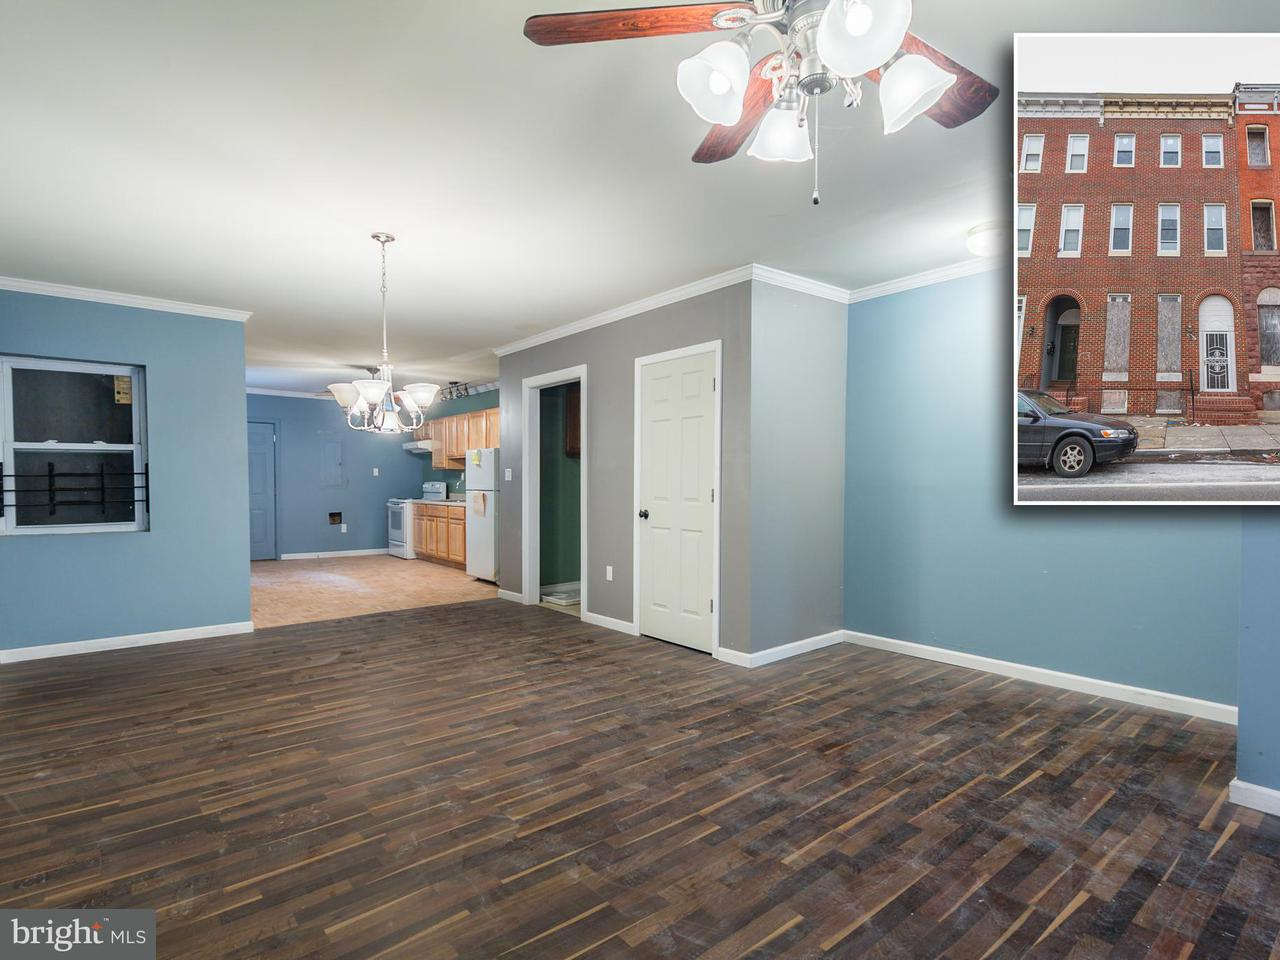 Other Residential for Sale at 1704 Mcculloh St Baltimore, Maryland 21217 United States